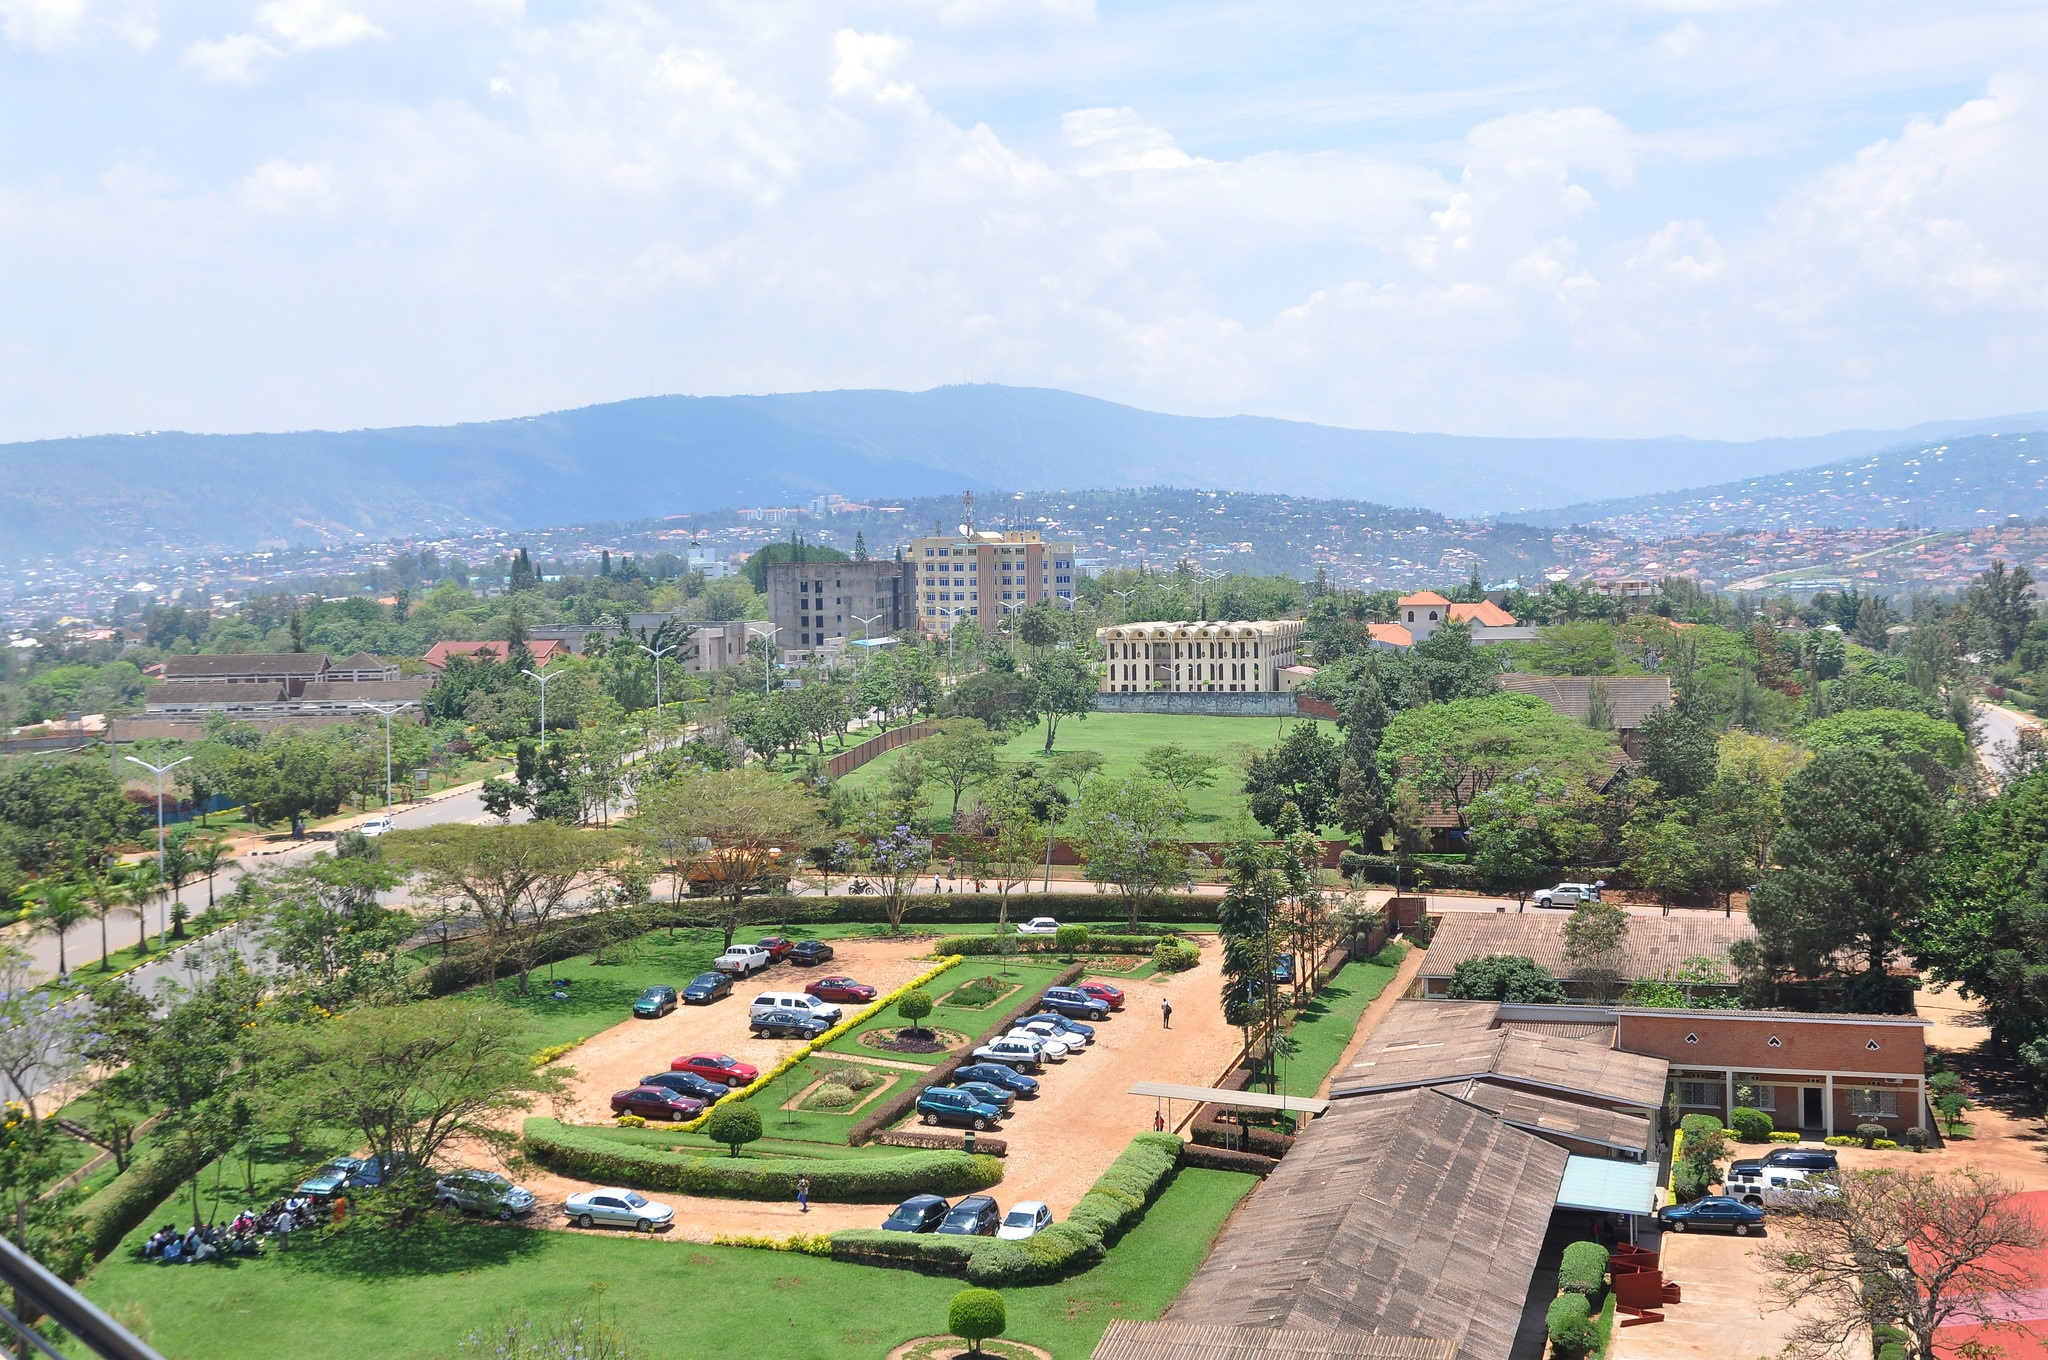 Kigali-City-is-already-a-clean-marvel-even-by-global-standards